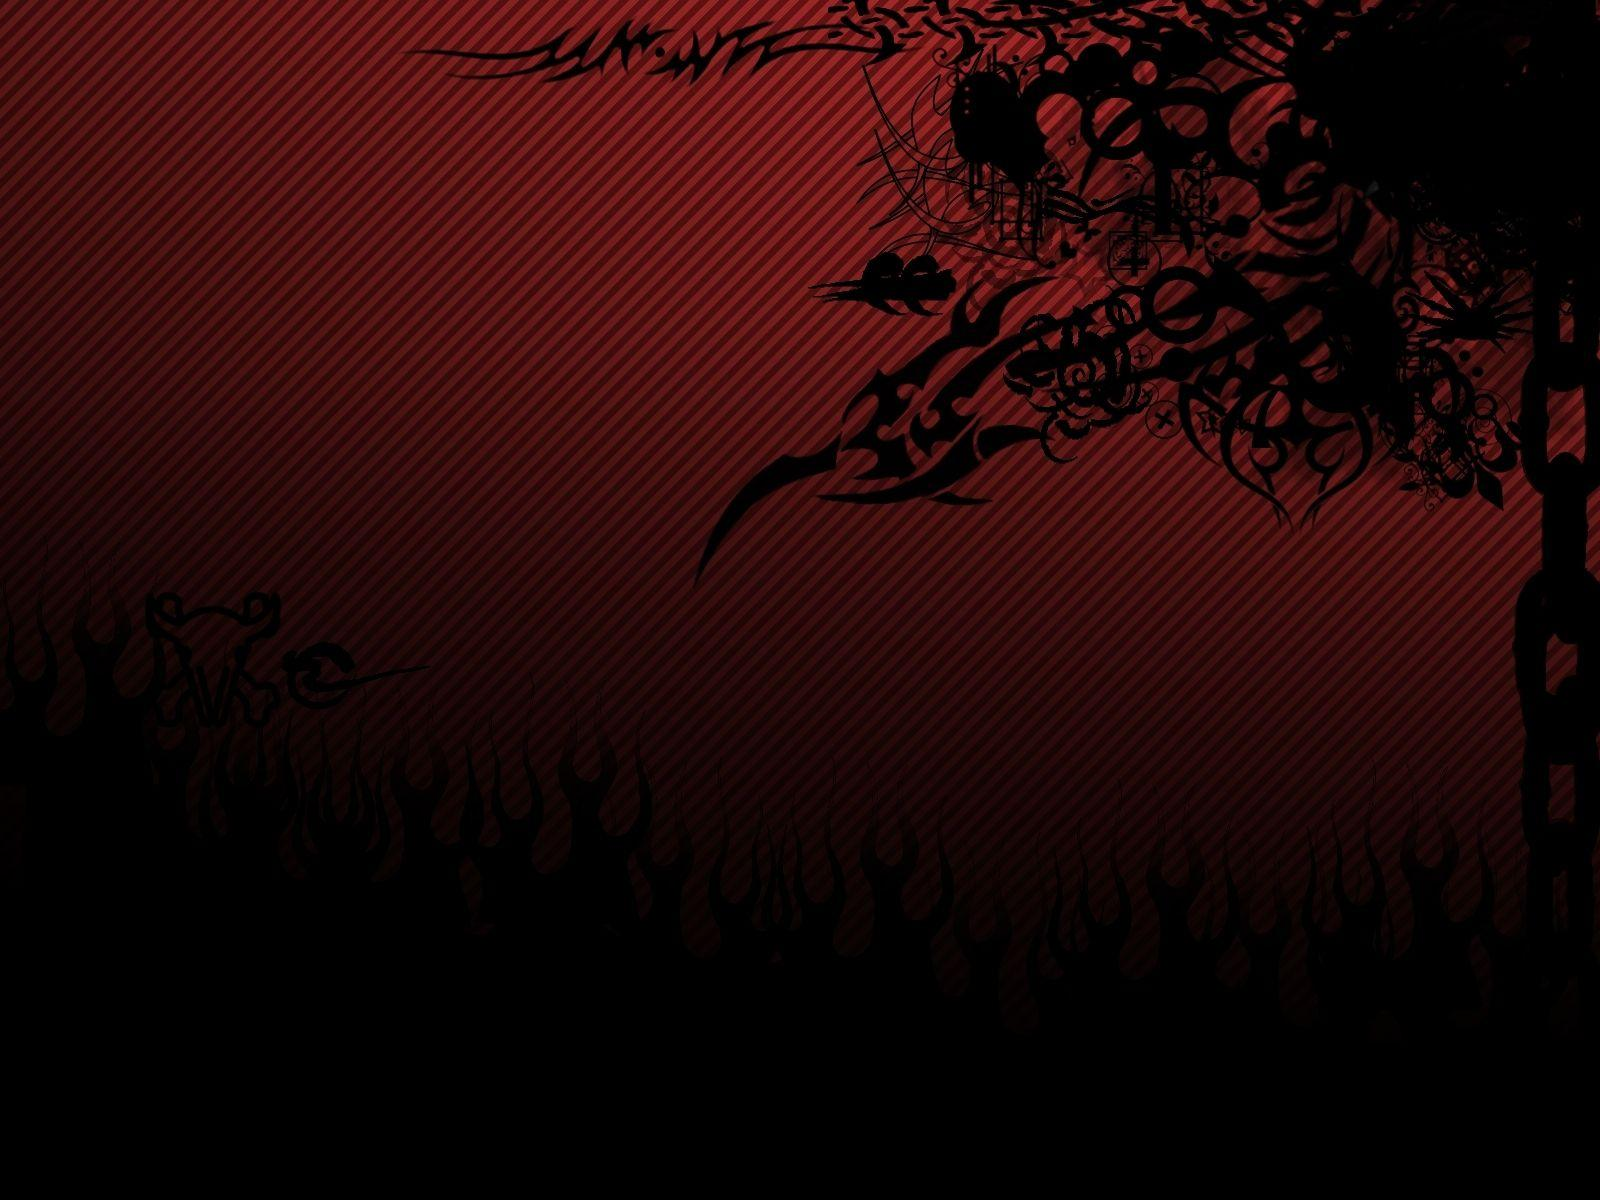 World Wallpaper: cool black and red backgrounds